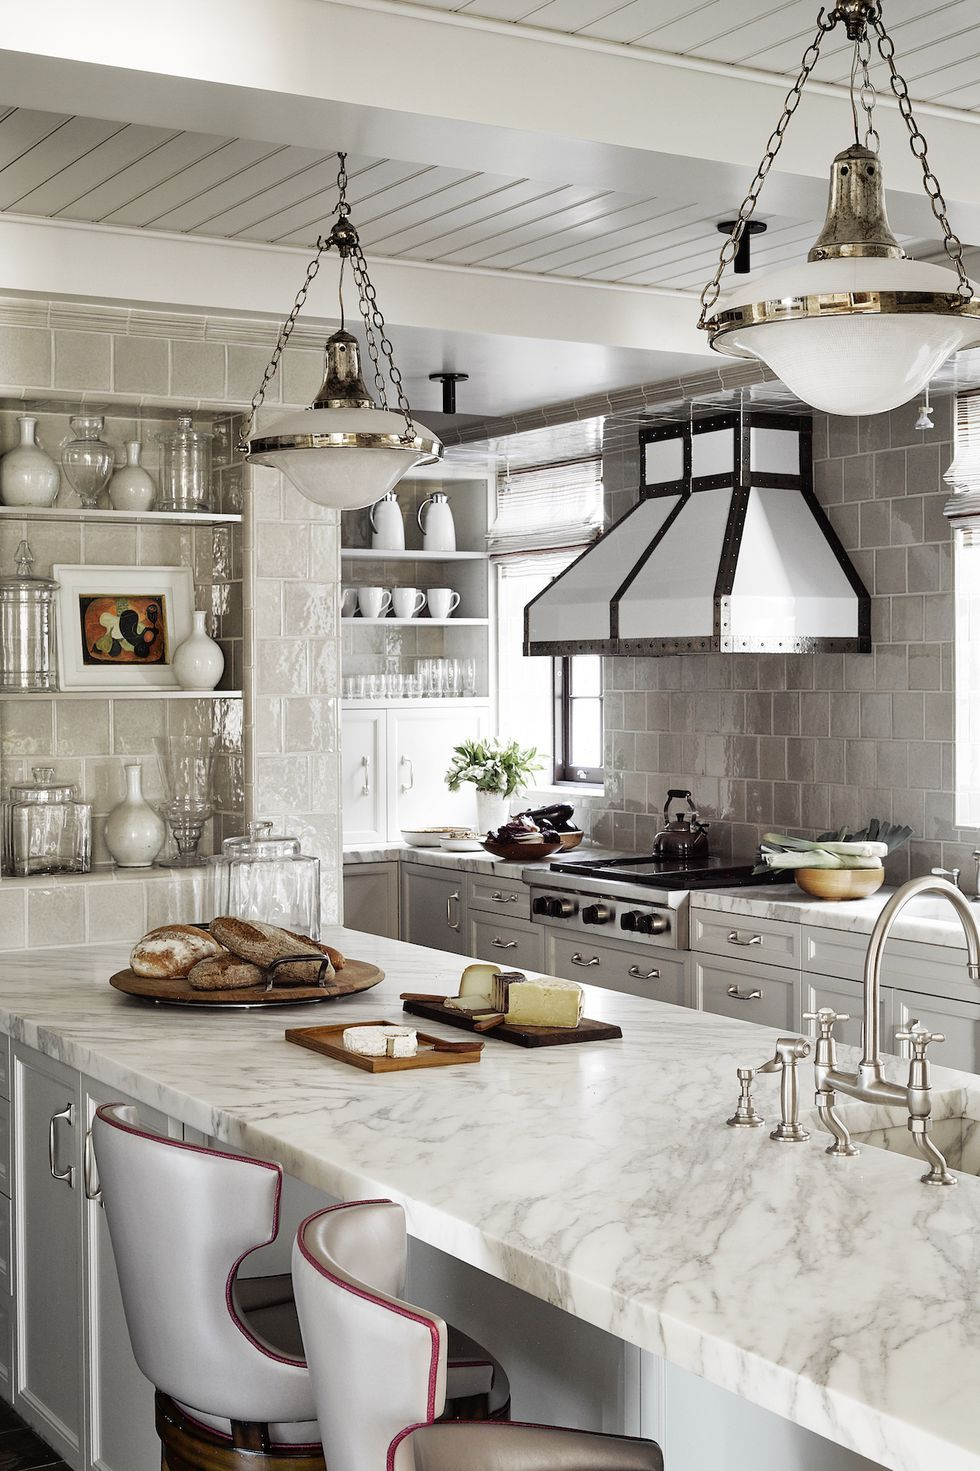 Different Kitchen Interior Decors That We Love